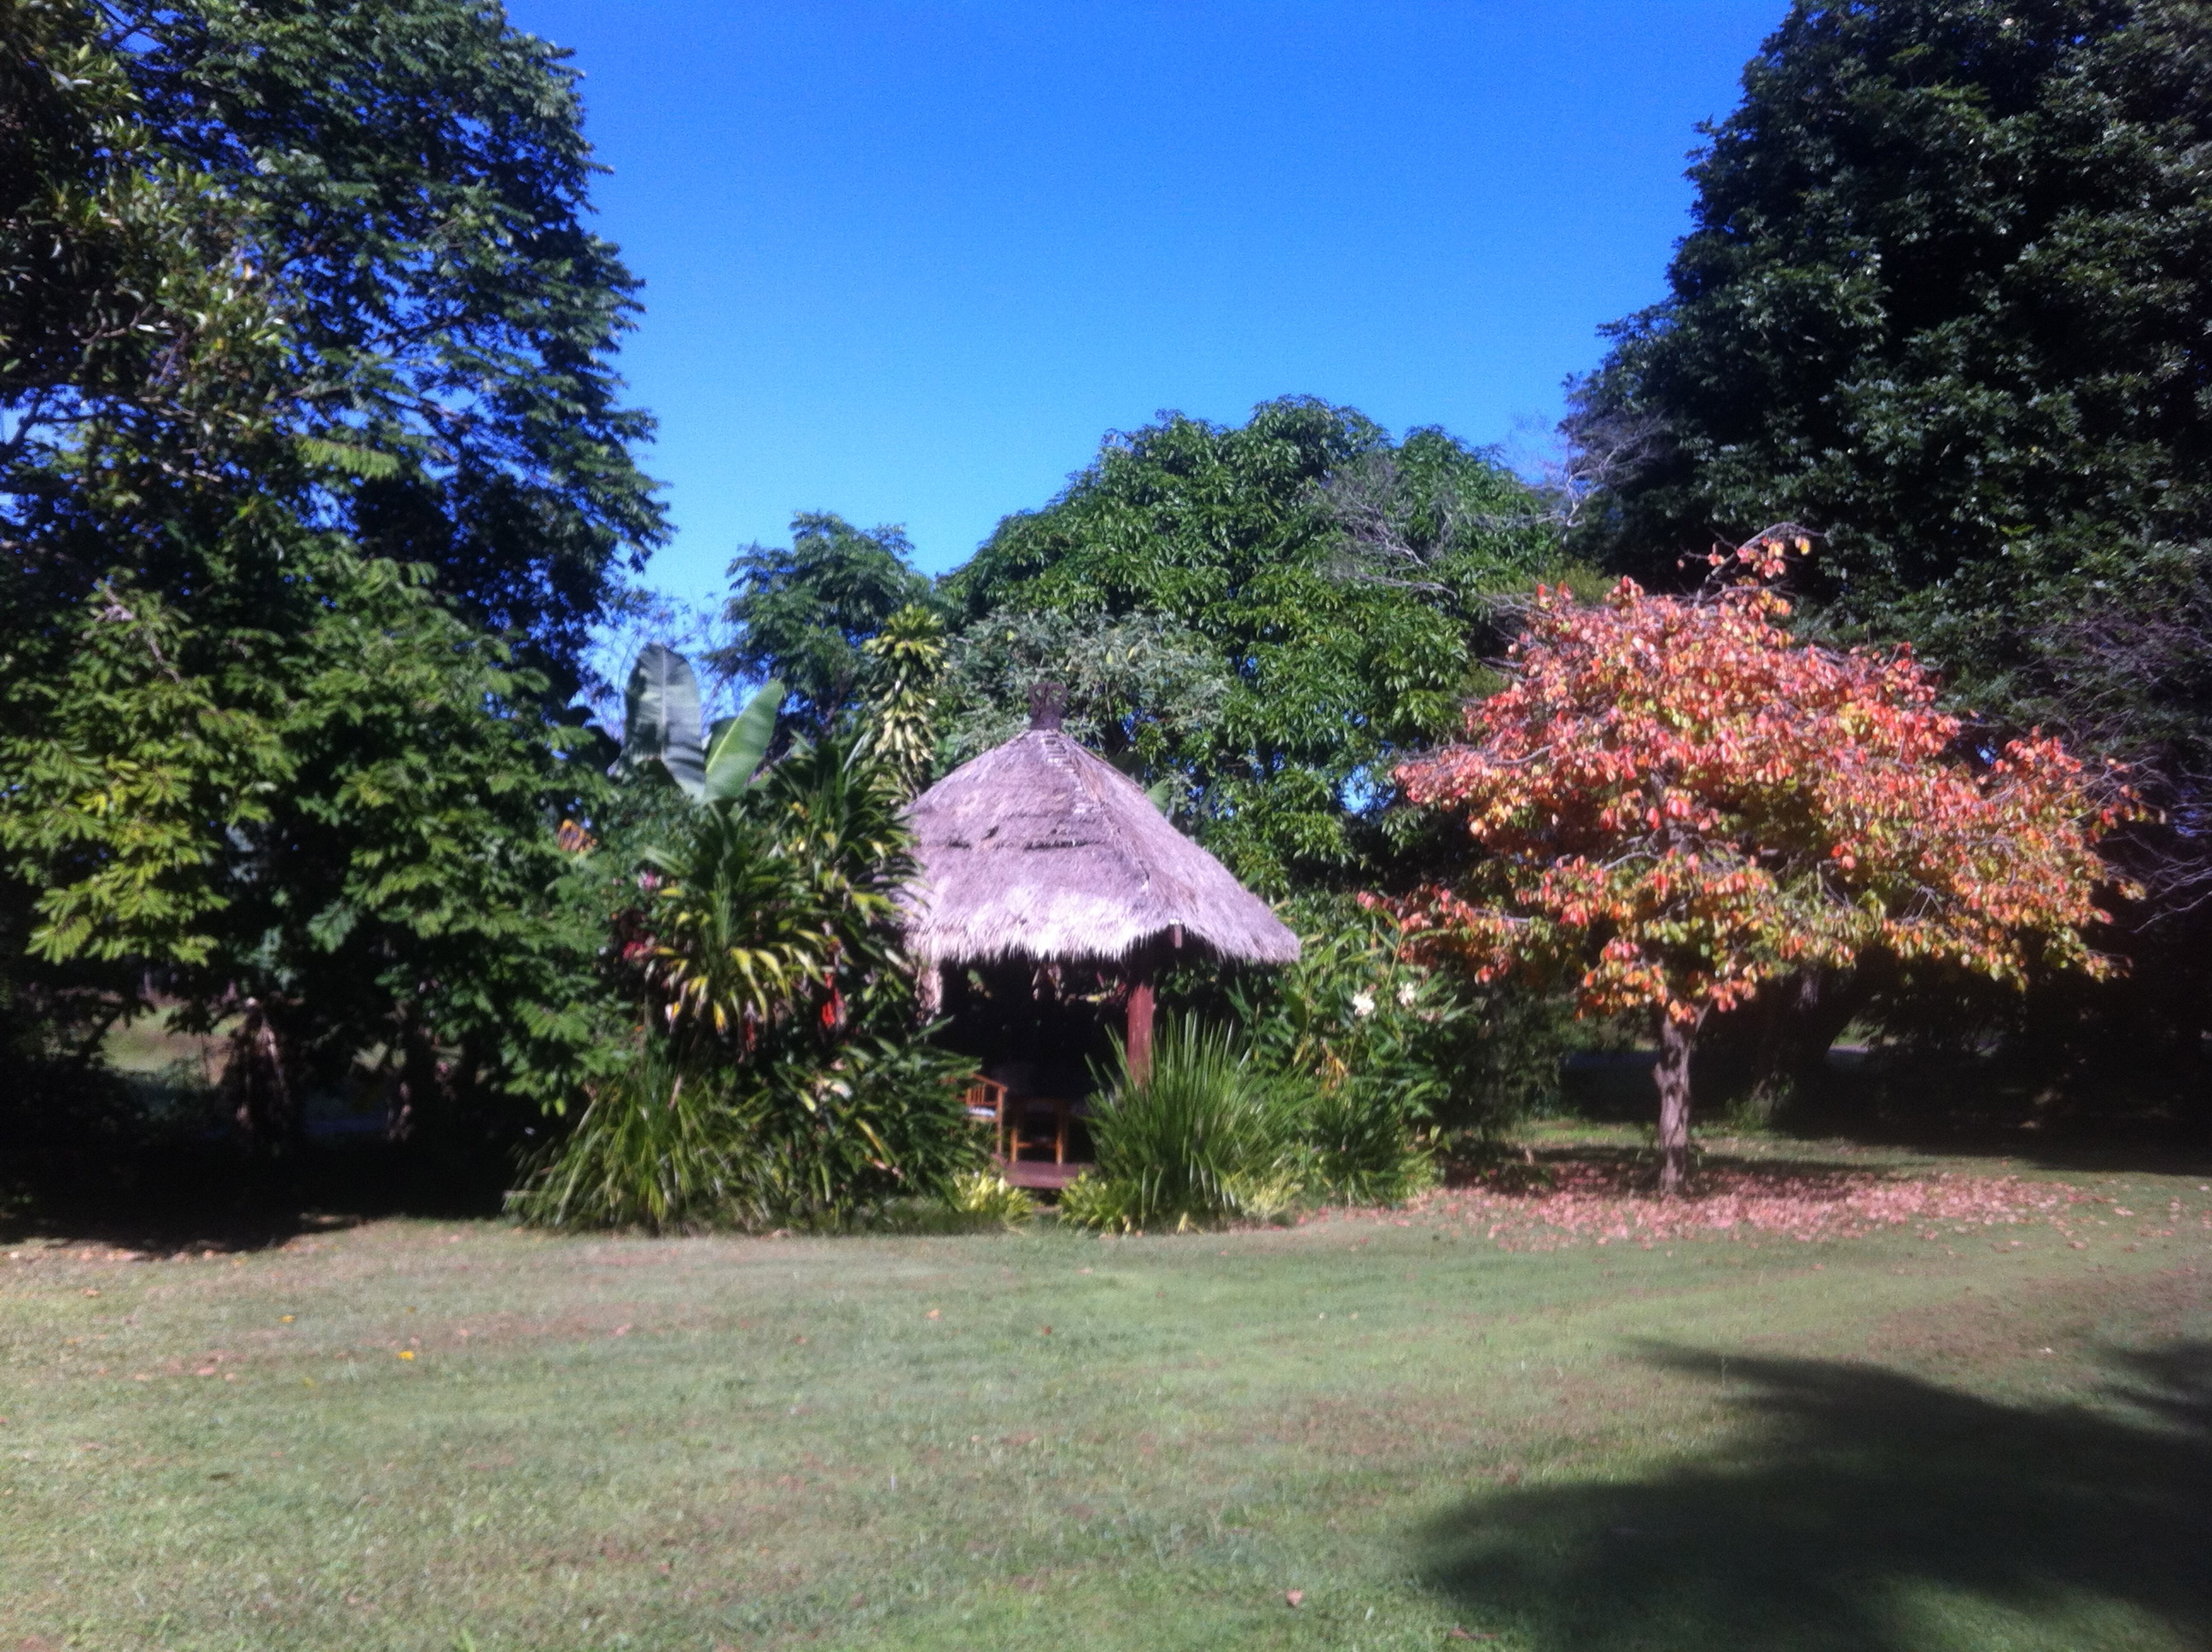 Balinese hut with autumn foliage